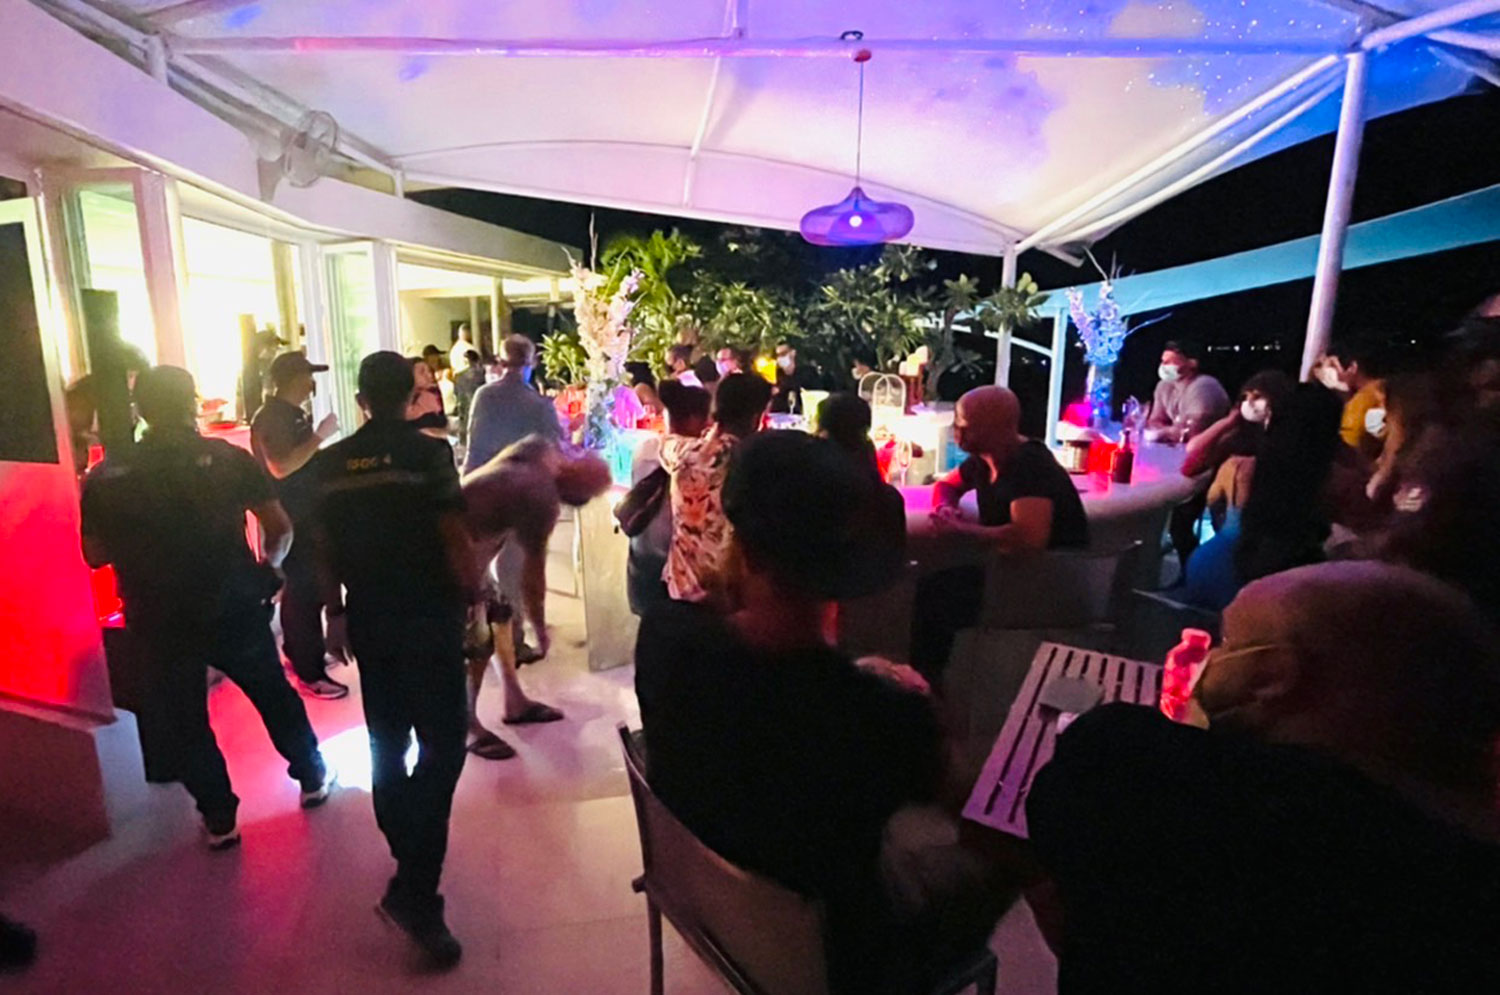 Police, soldiers and local officials round up guests at a birthday party held in violation of Covid restrictions at a Koh Samui resort early Saturday. (Photo: Koh Samui Covid-19 operation centre)